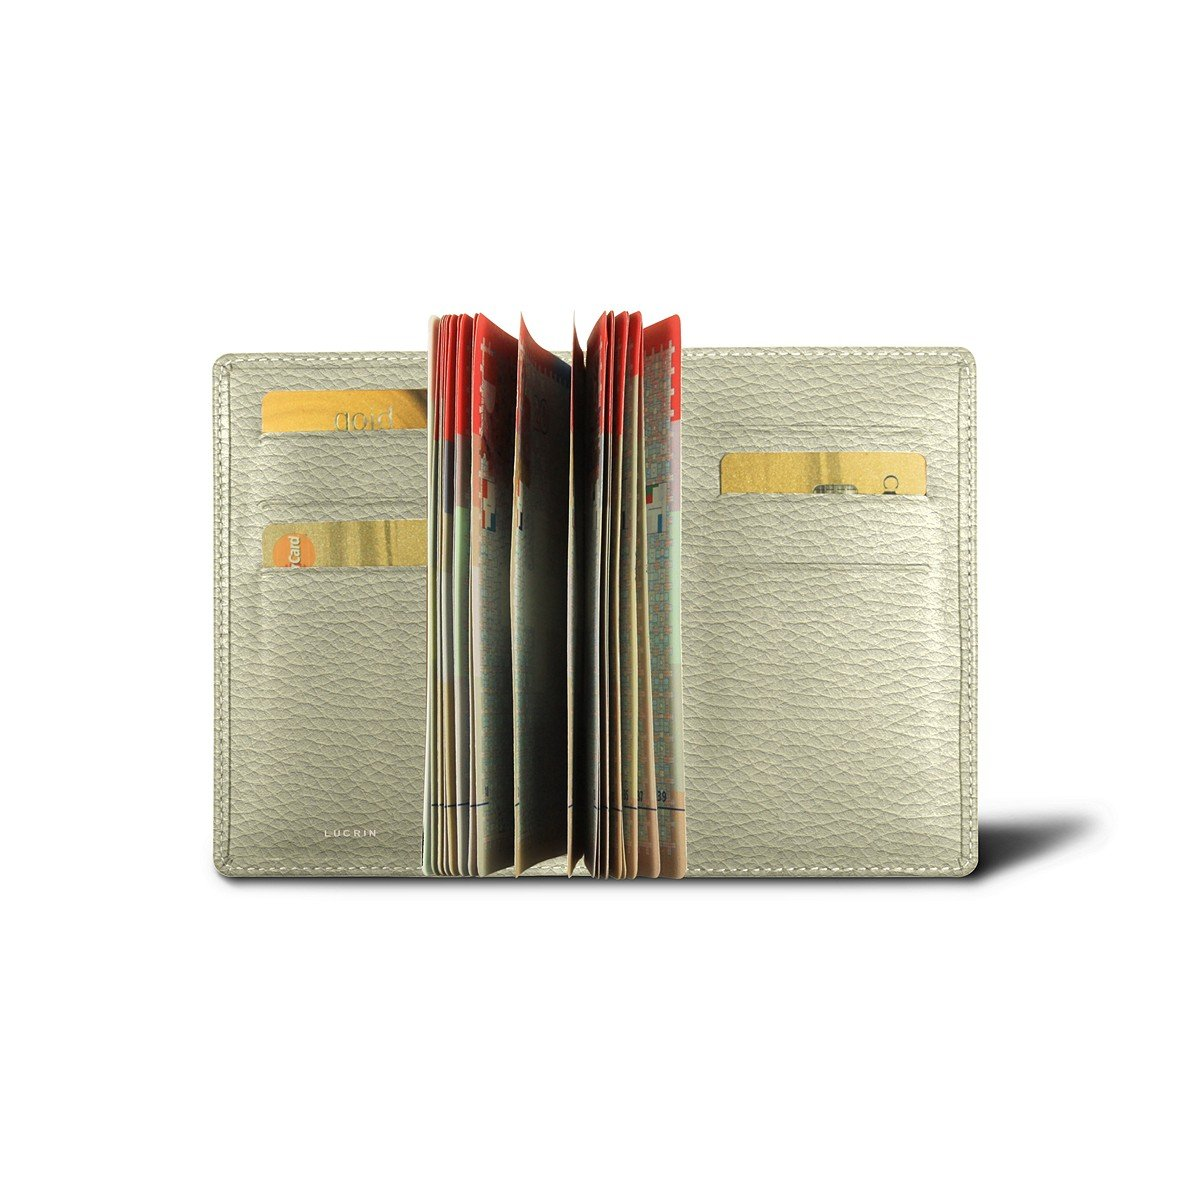 Lucrin - Luxury Passport Holder - Off-White - Granulated Leather